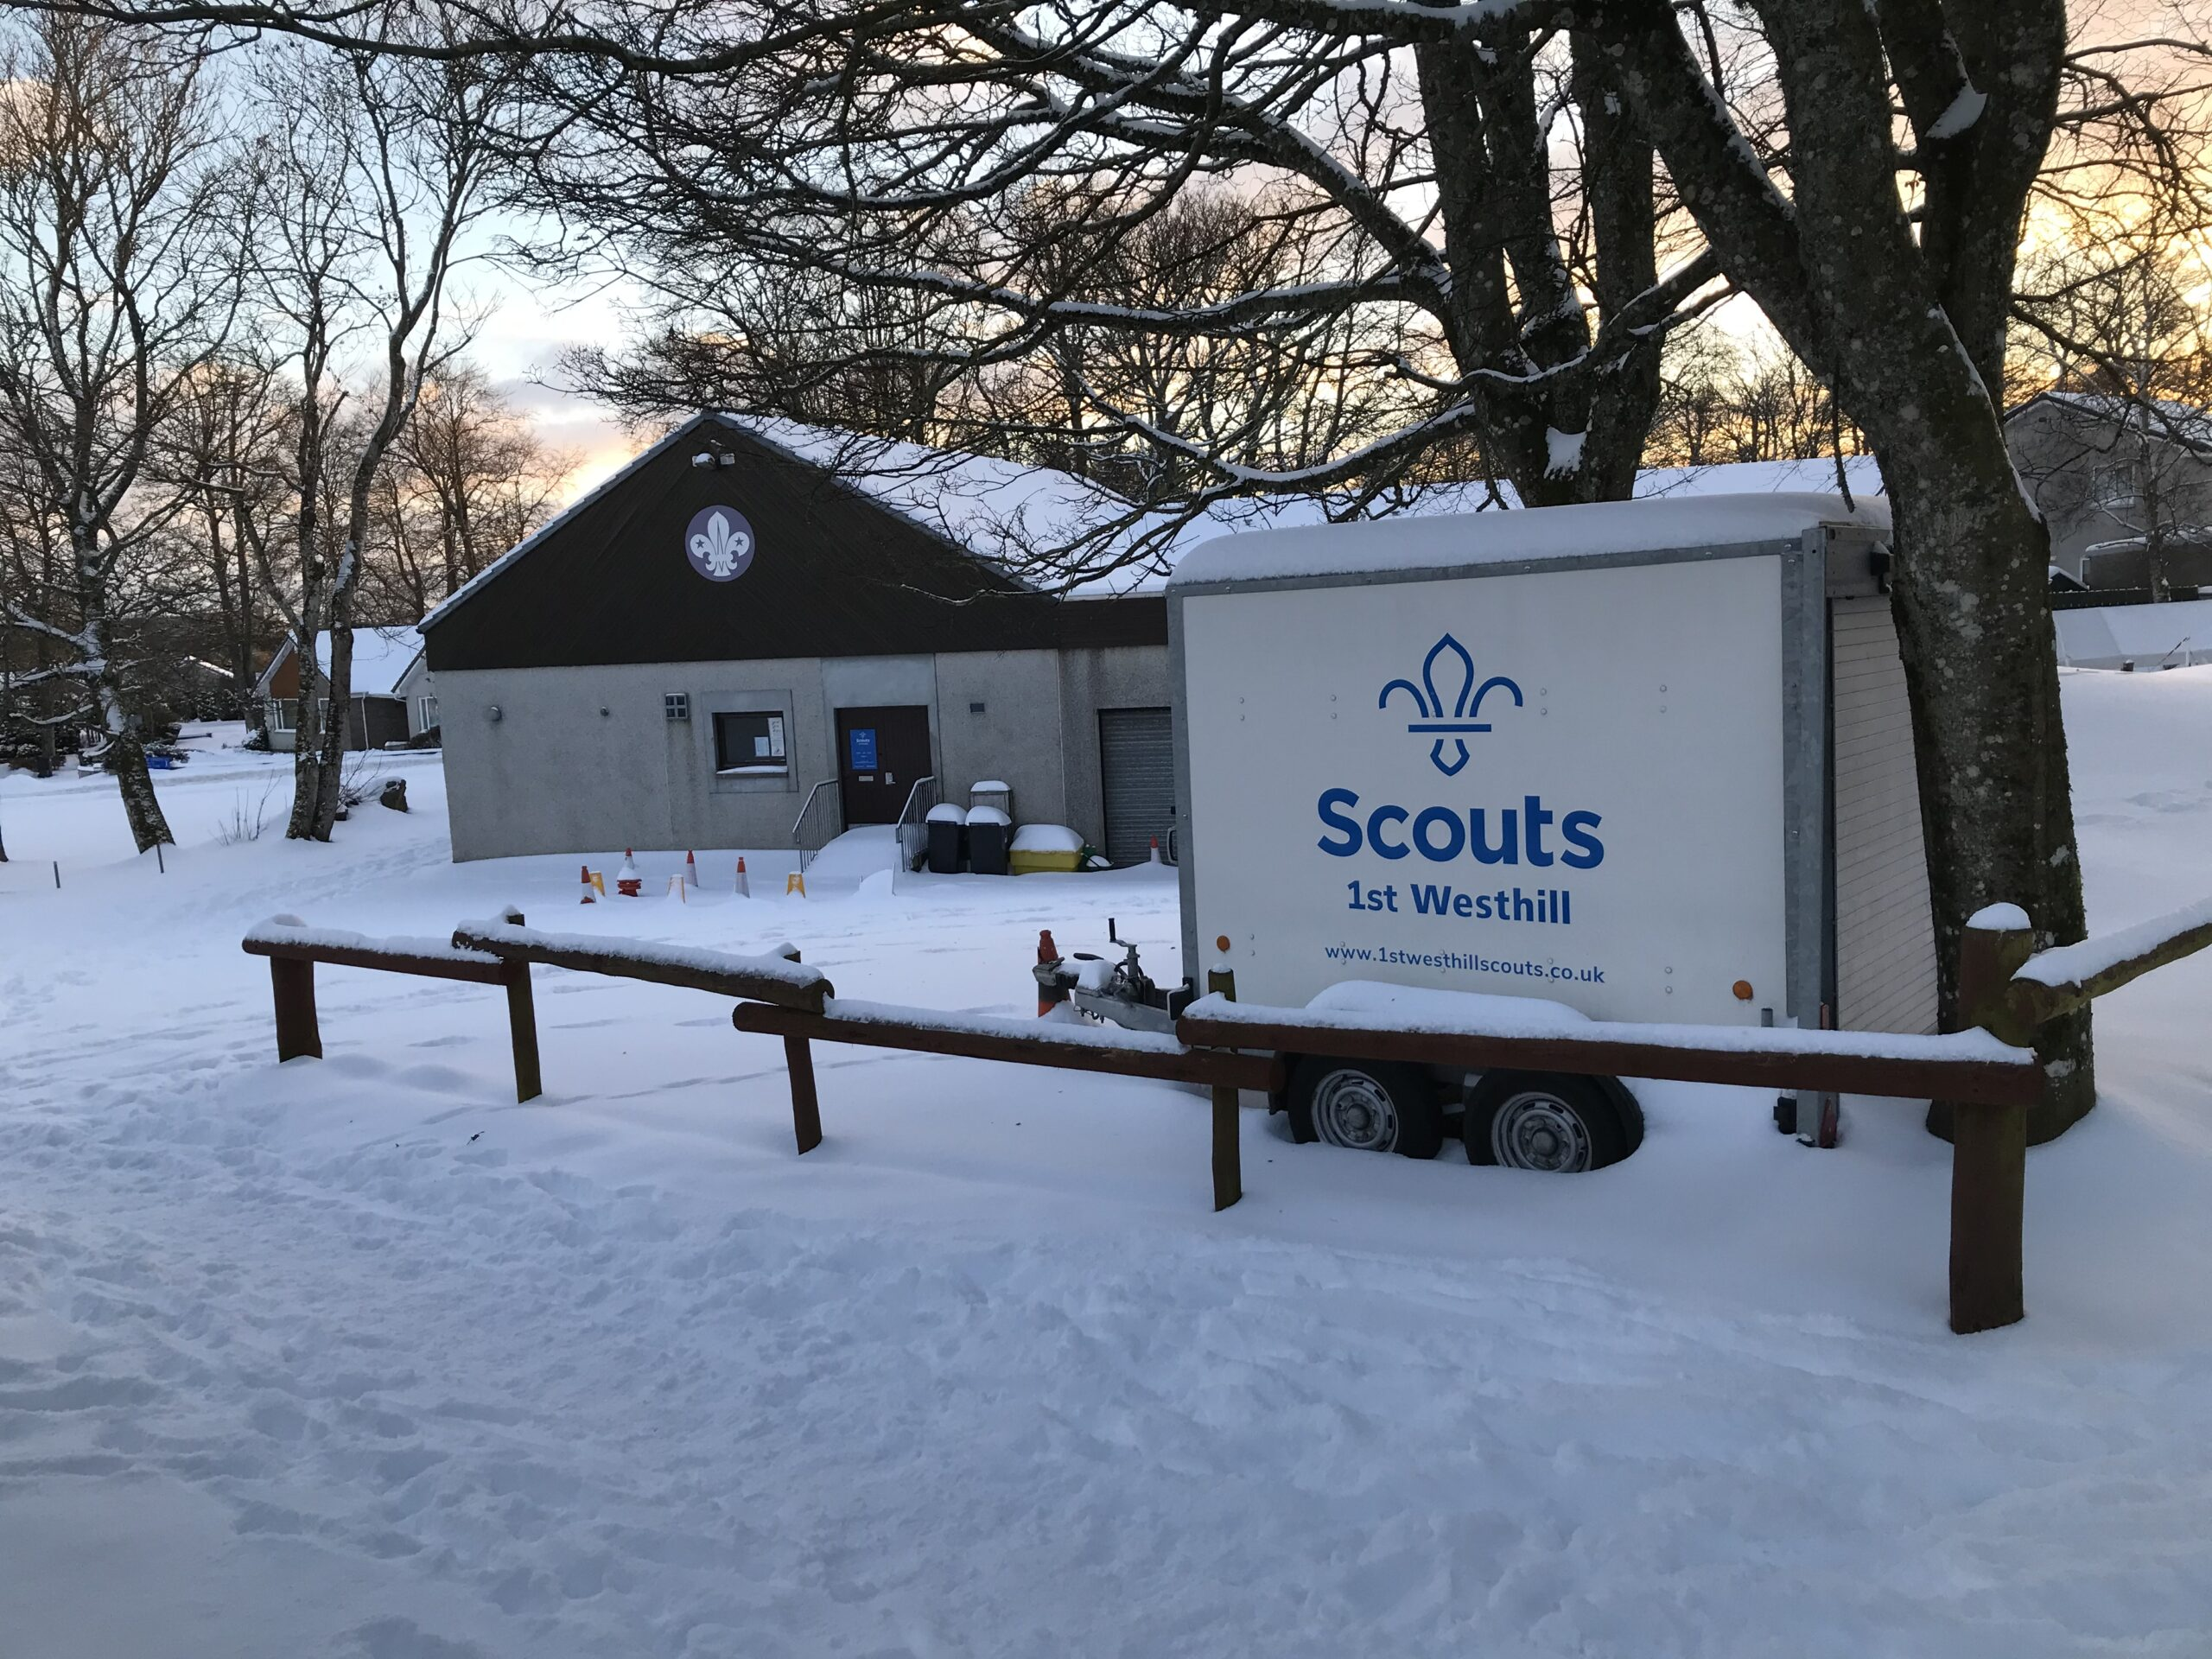 2021 Snow at the Scout hall